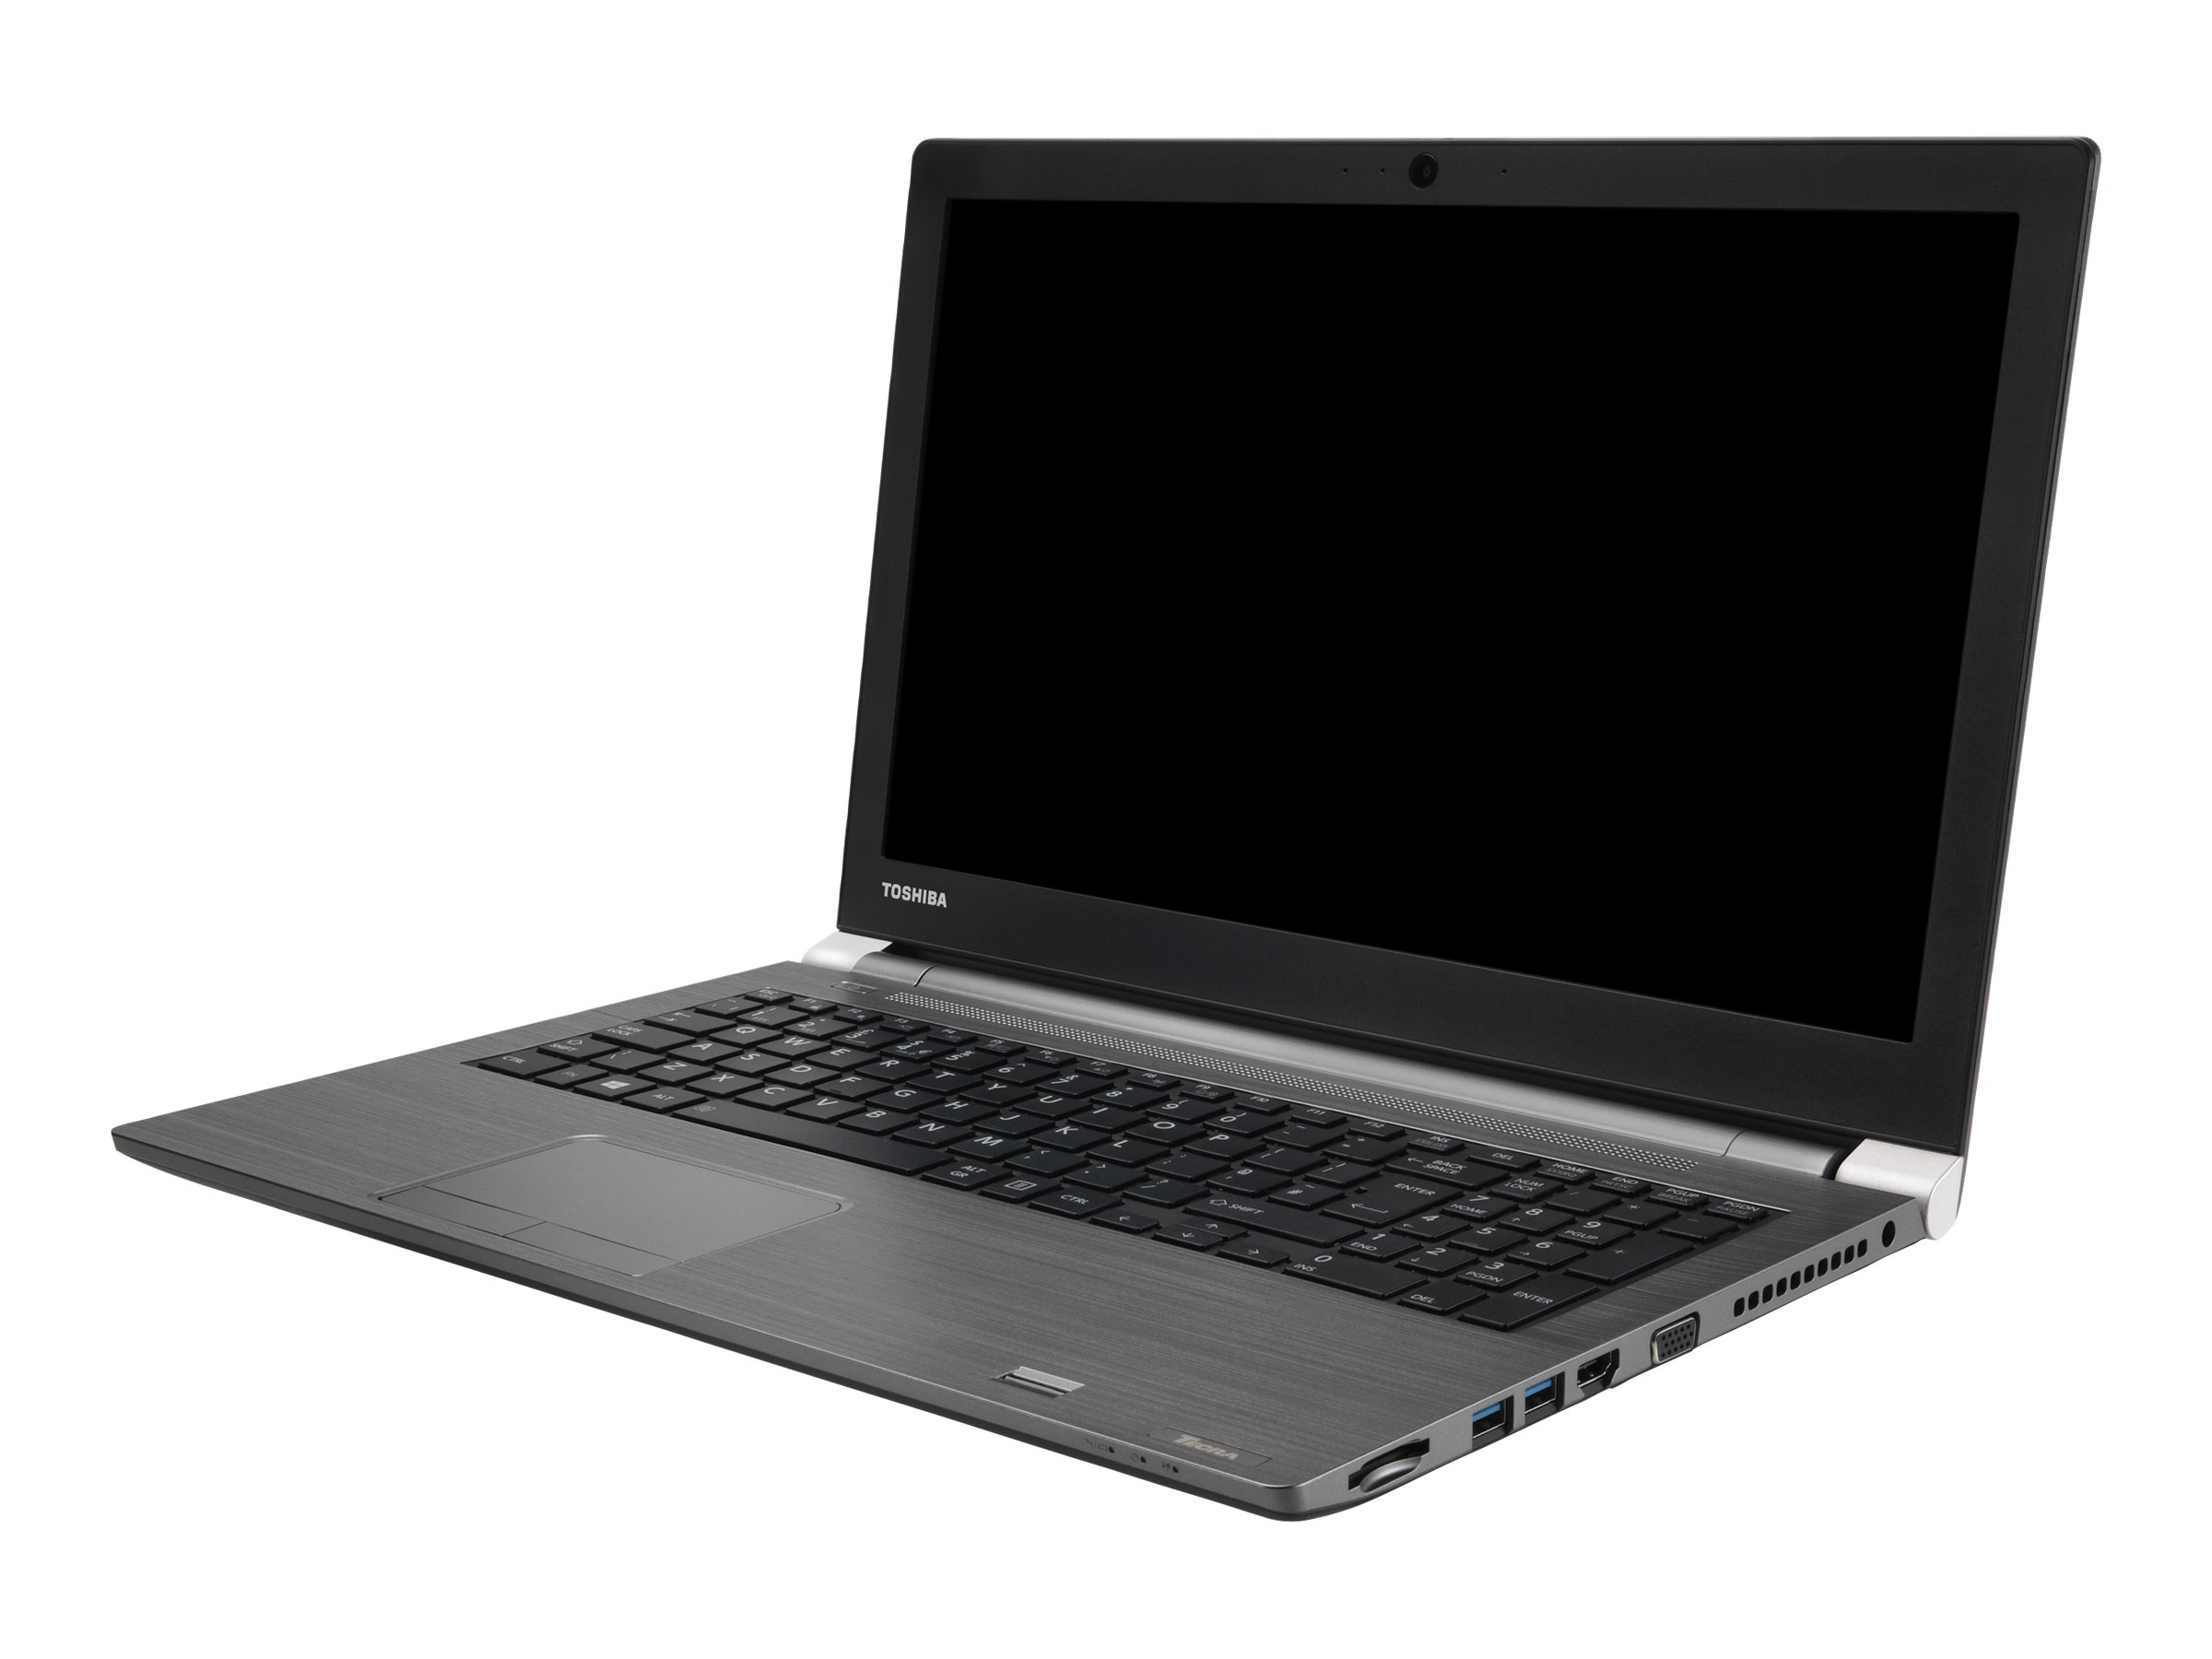 "Toshiba Tecra A50-D-01D Core i5 7200U   2.5 GHz Win 10 Pro 8 GB RAM 500 GB HDD 15.6"" 1366 x 768 (HD) HD... by Toshiba"